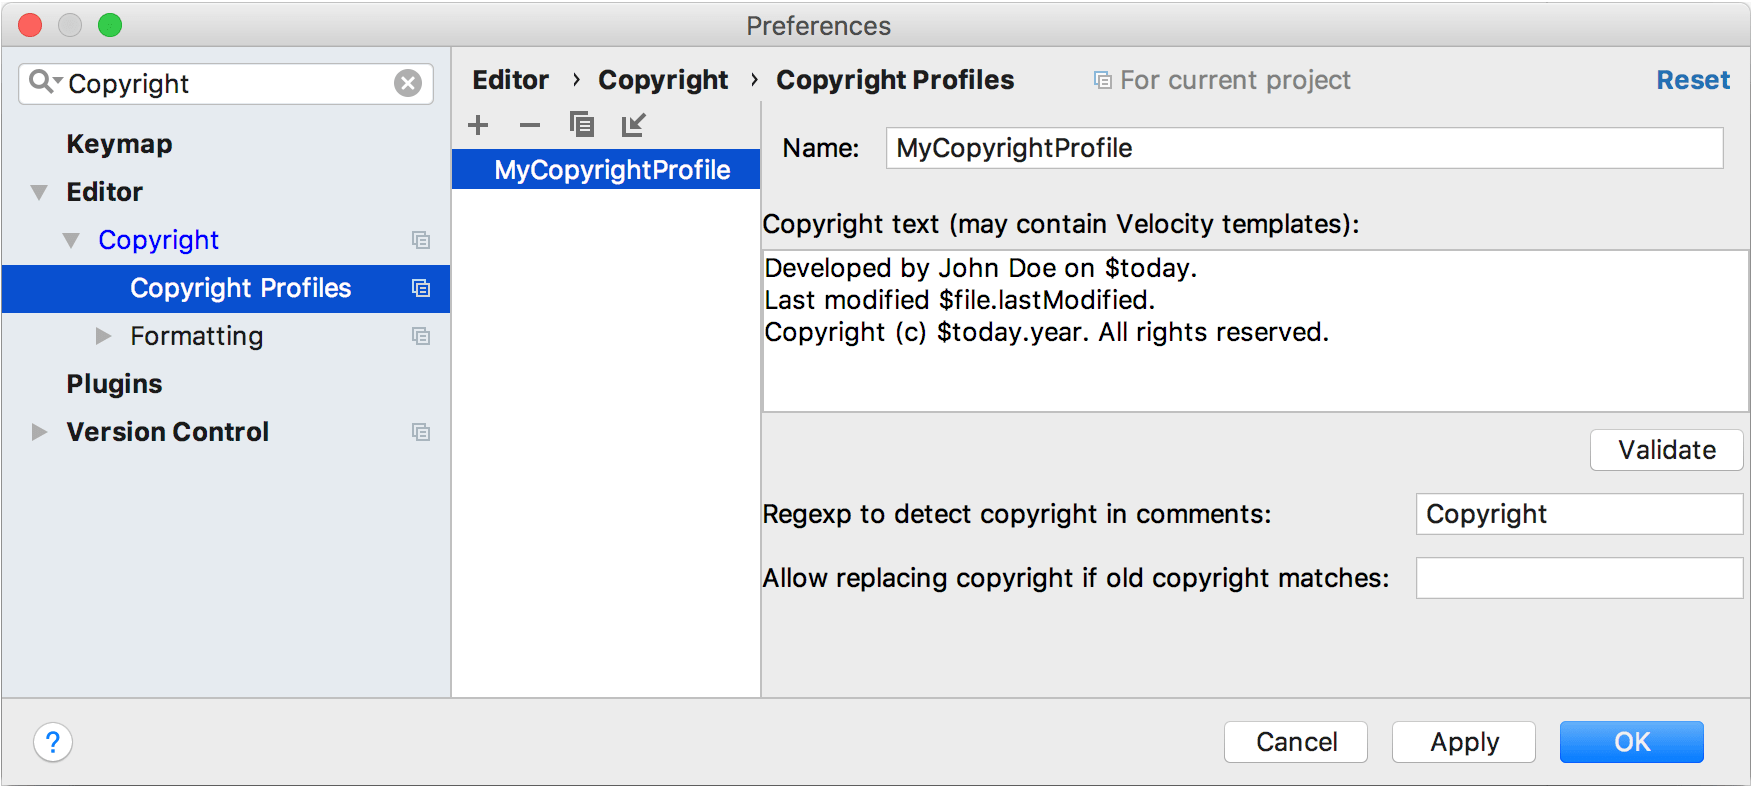 Configuring a copyright profile